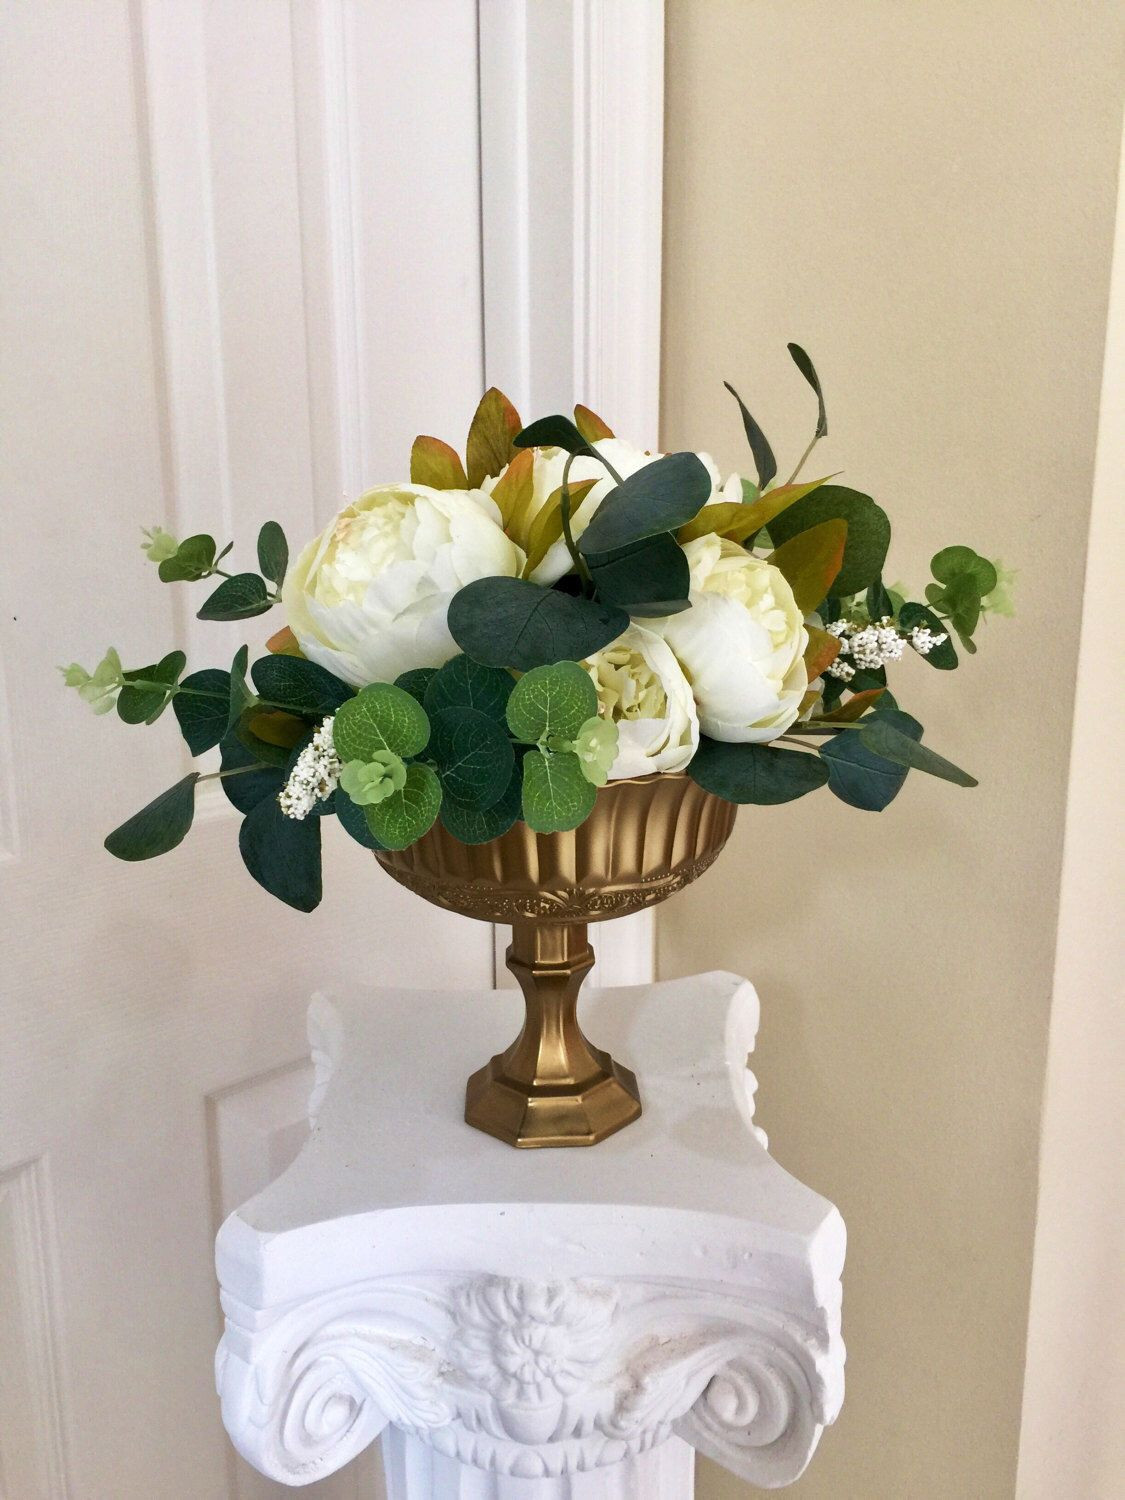 21 Spectacular Roseville Vases Prices